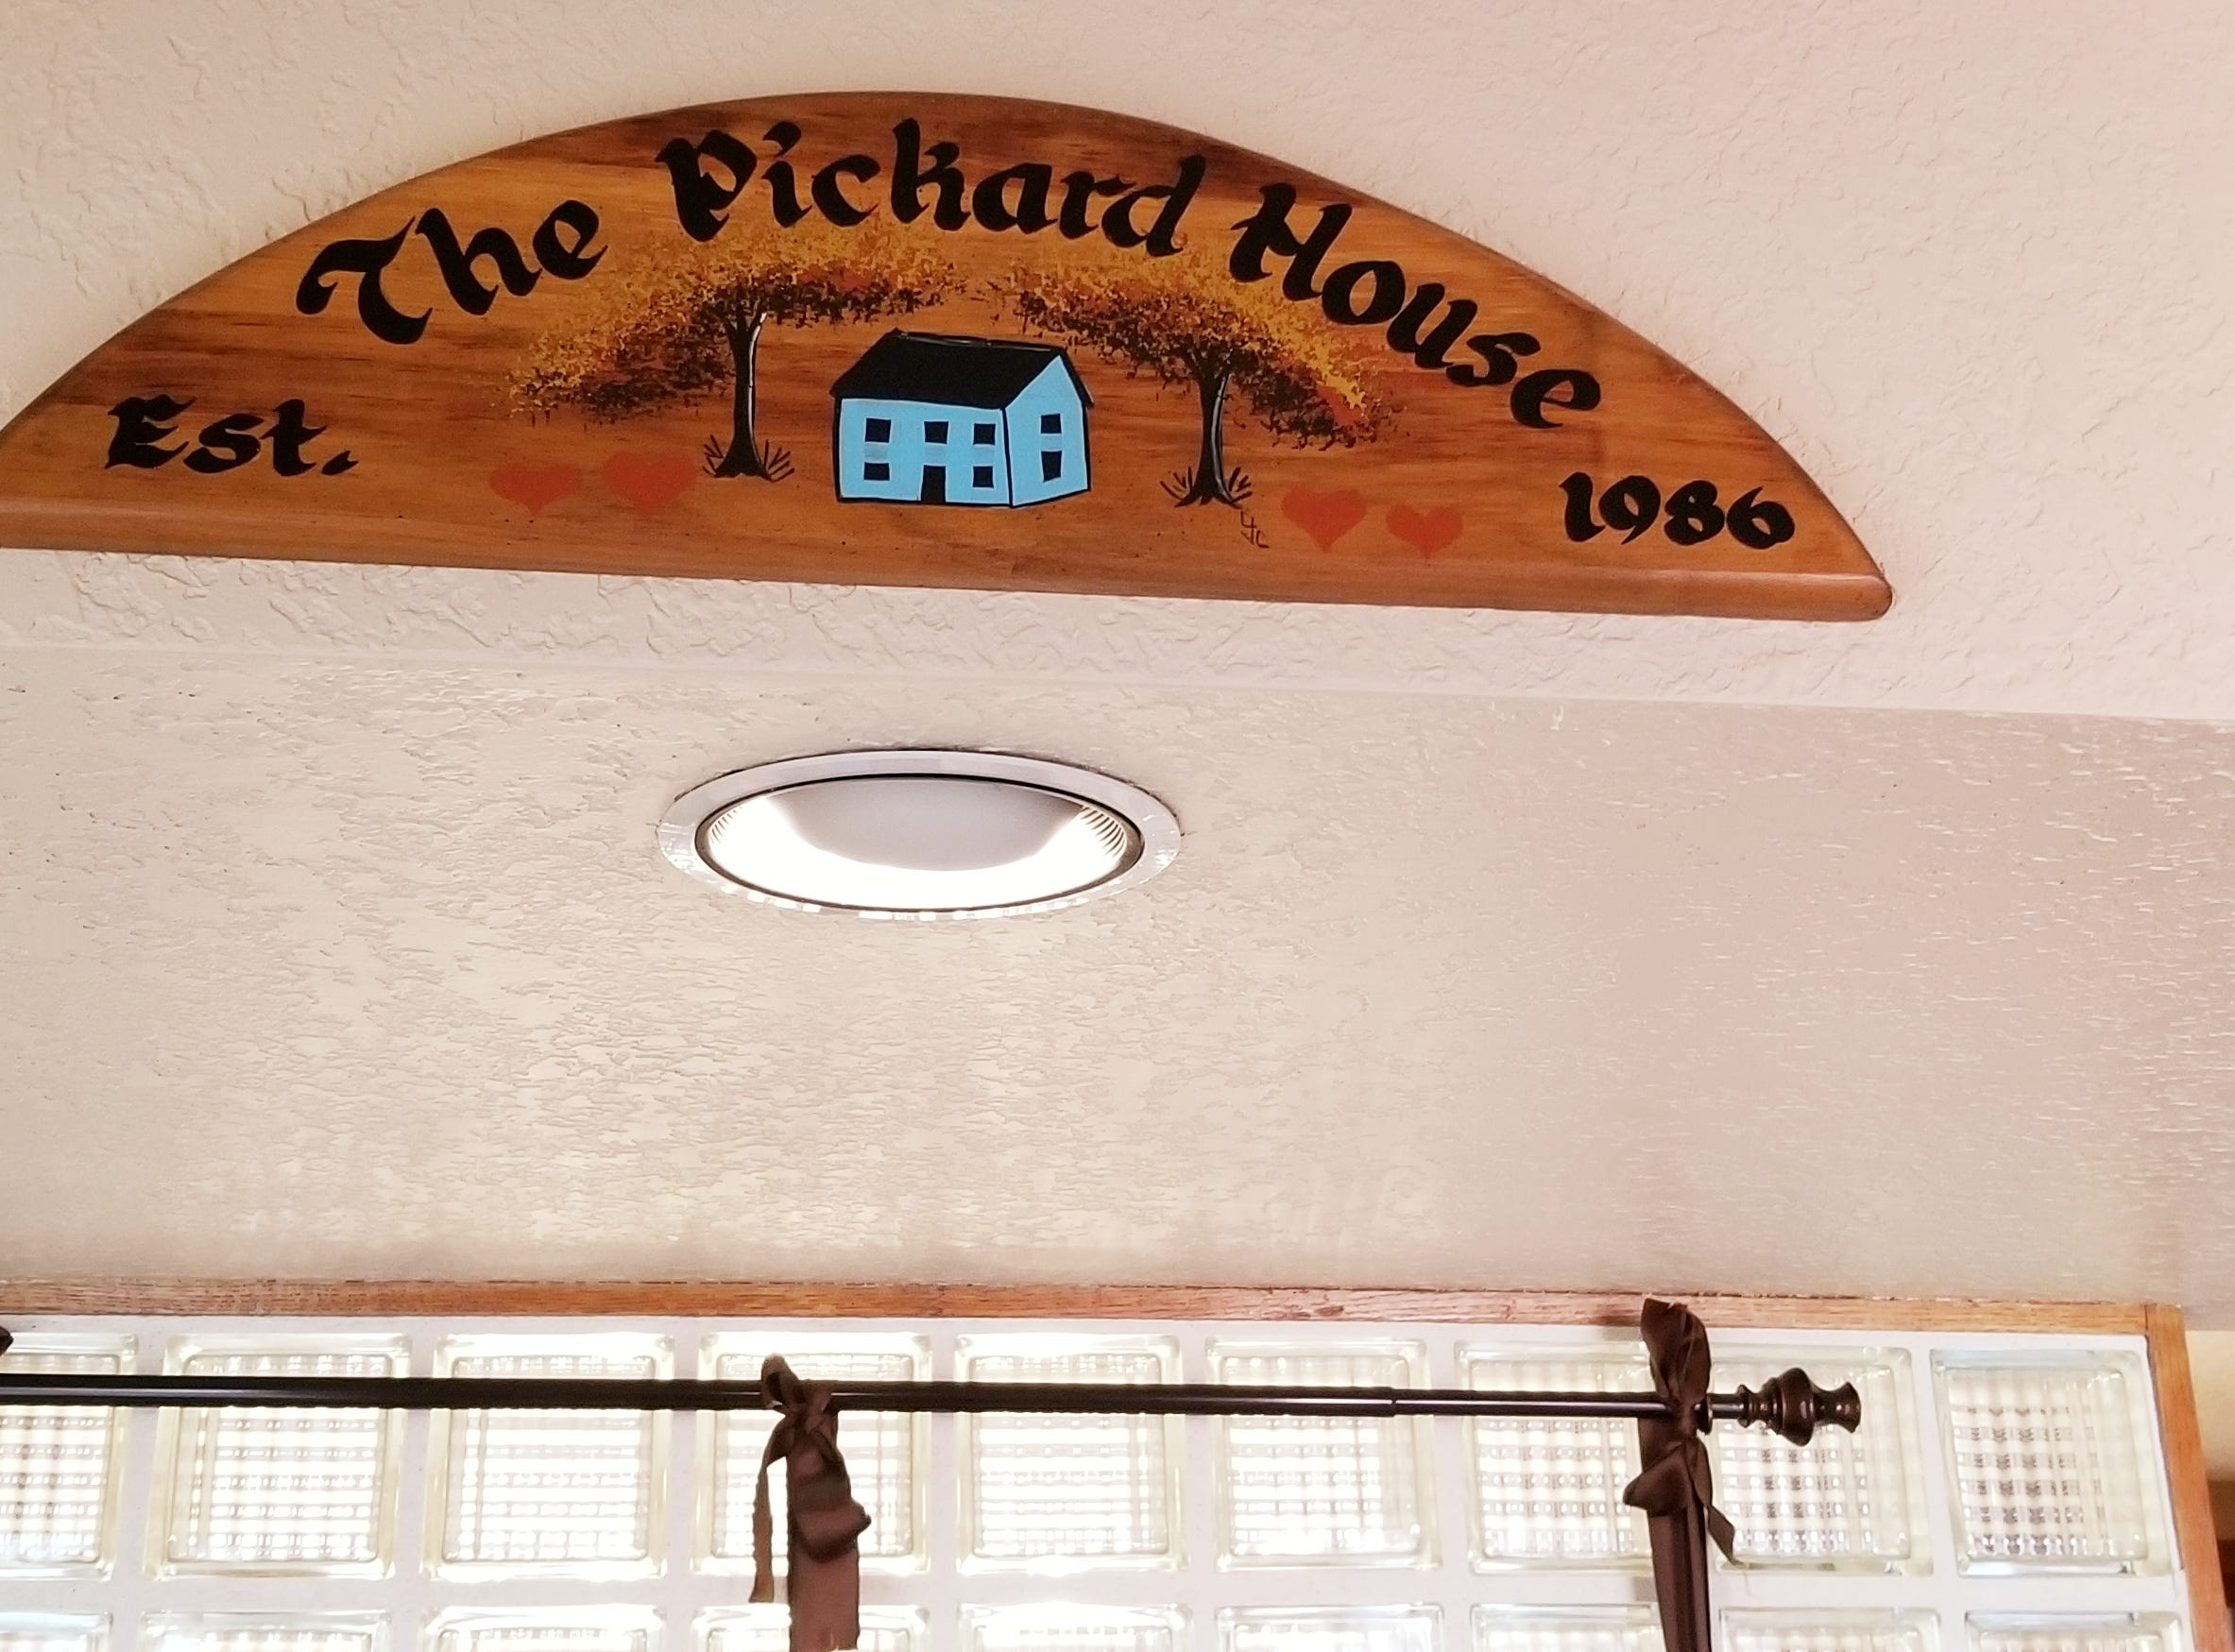 Tole painted signage hangs in the entry, declaring the Pickard House having been established in 1986.